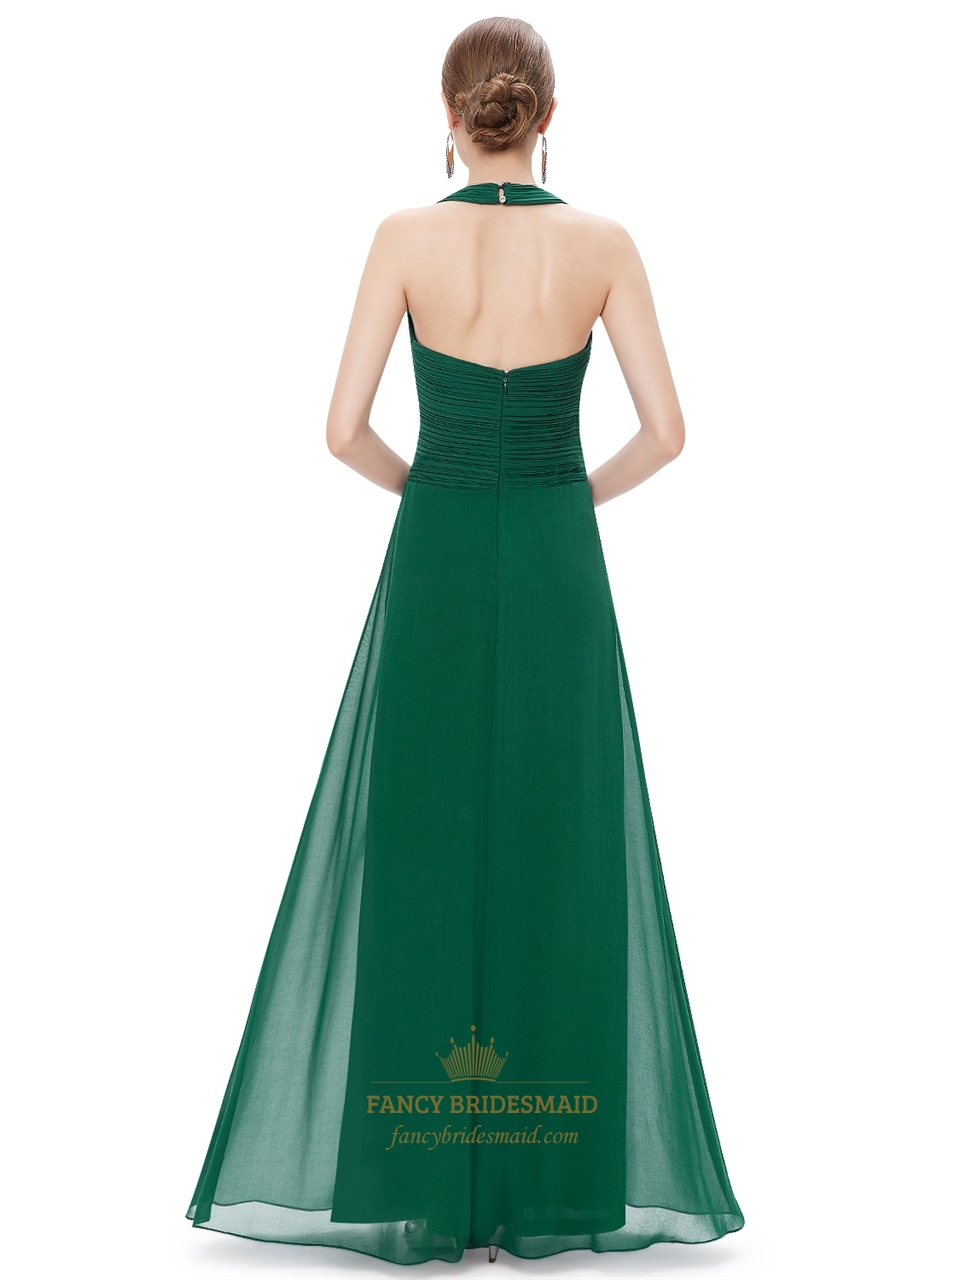 Emerald Green Chiffon Halter Neck Bridesmaid Dresses With